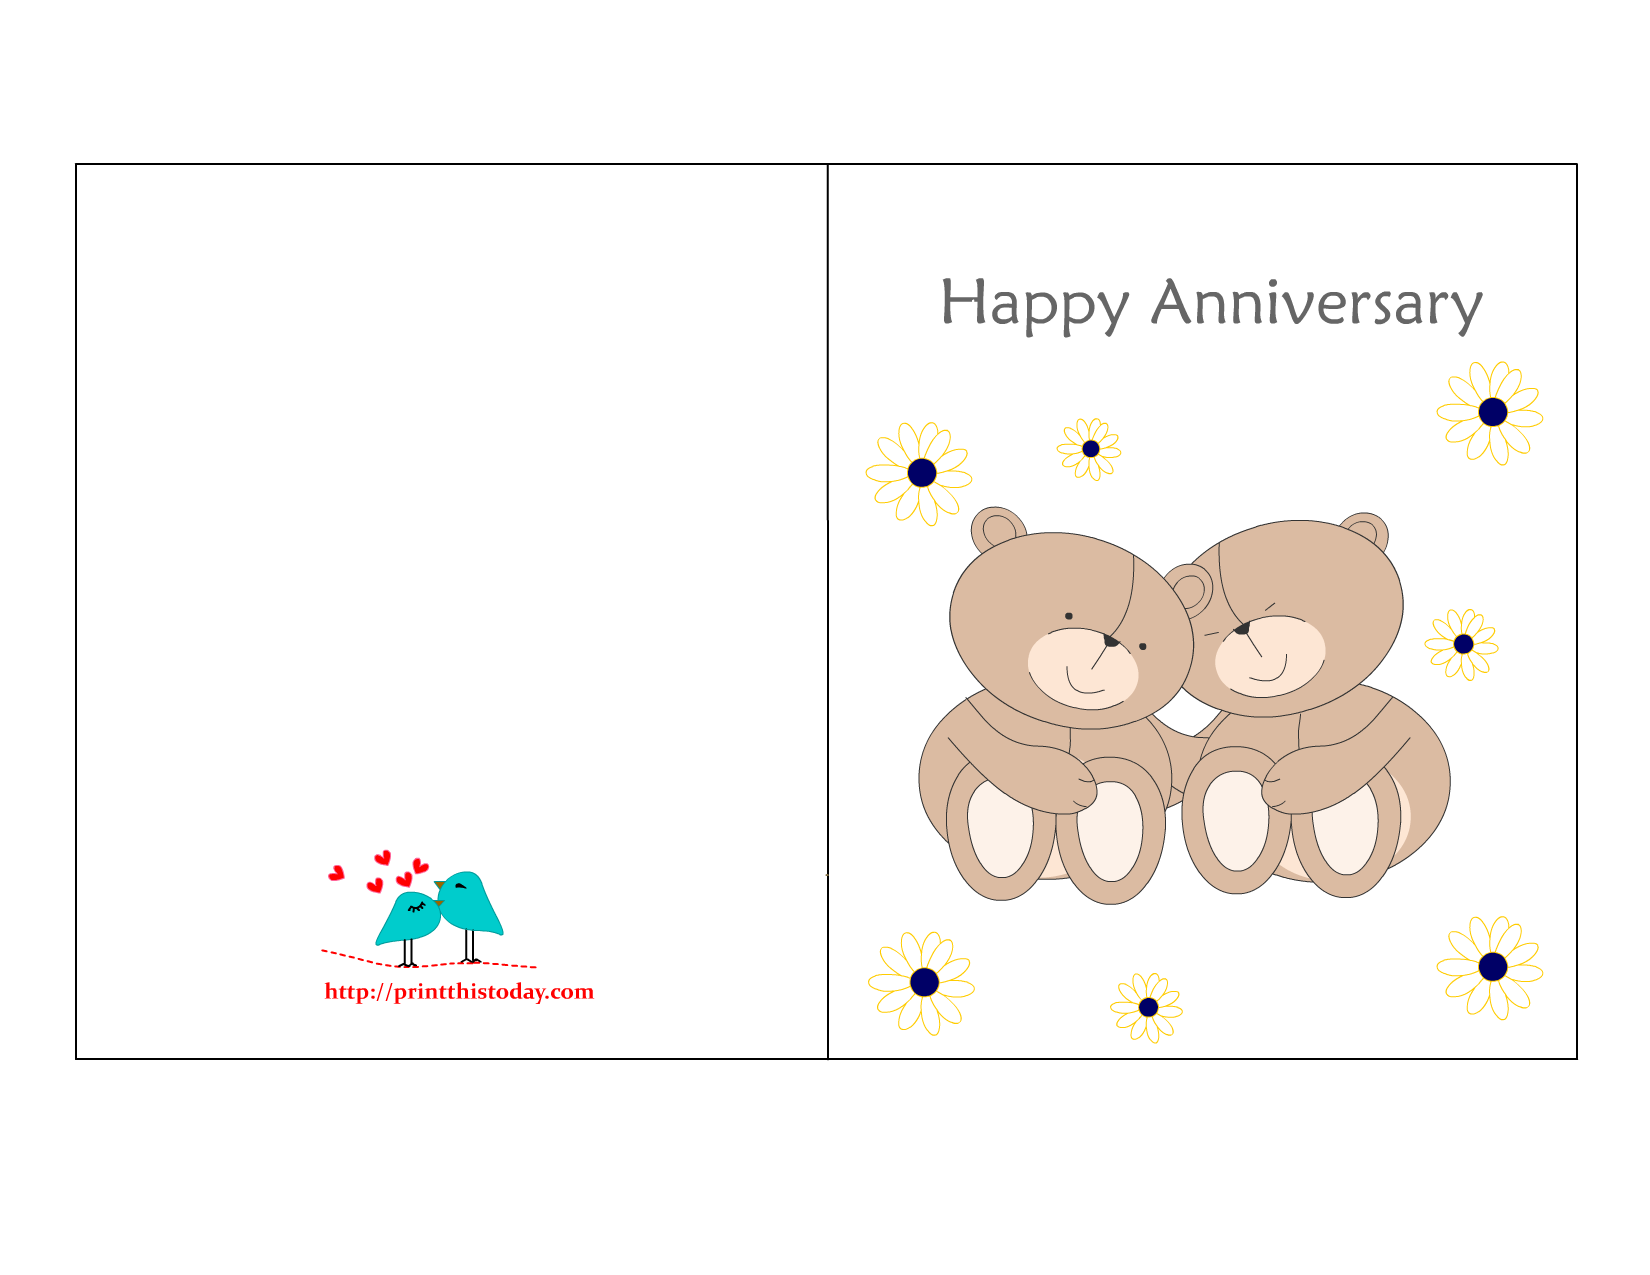 Charming Free Printable Anniversary Card With Teddy Bears Ideas Printable Anniversary Cards For Husband